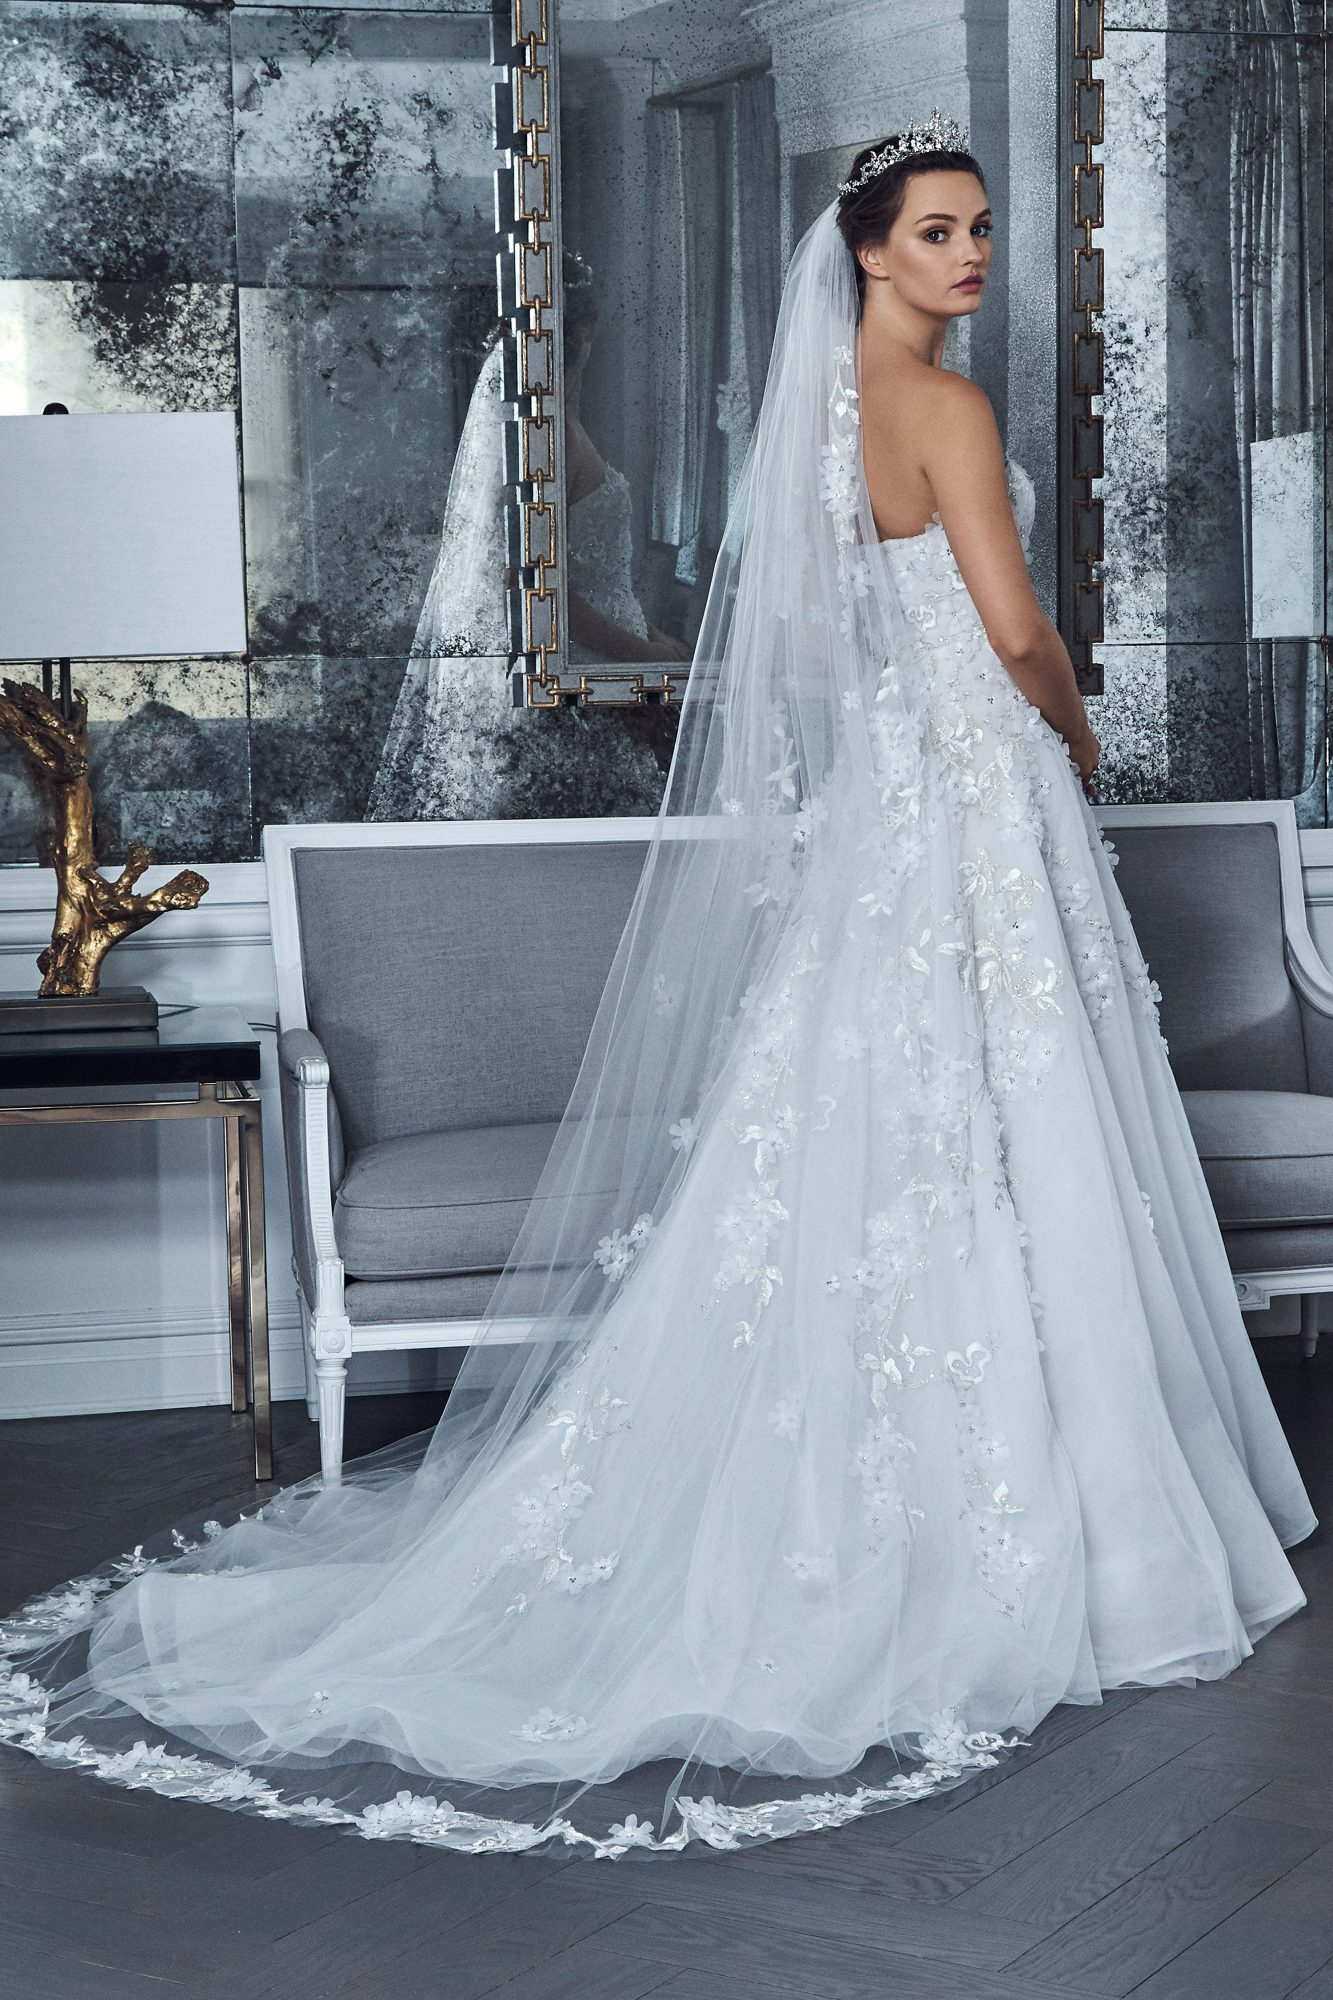 romona keveza collection wedding dress spring 2019 strapless a-line